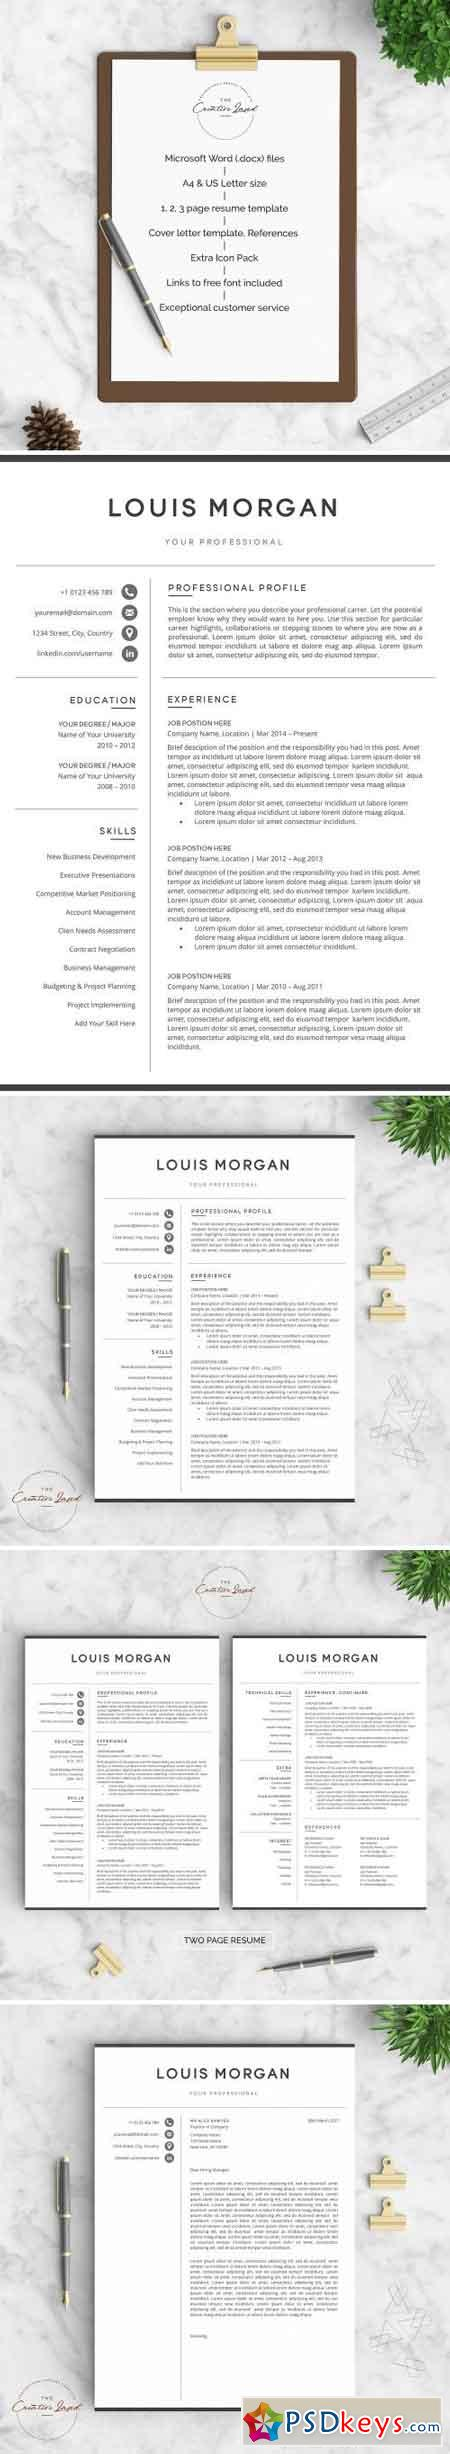 Resume CV - The Louis 2144576